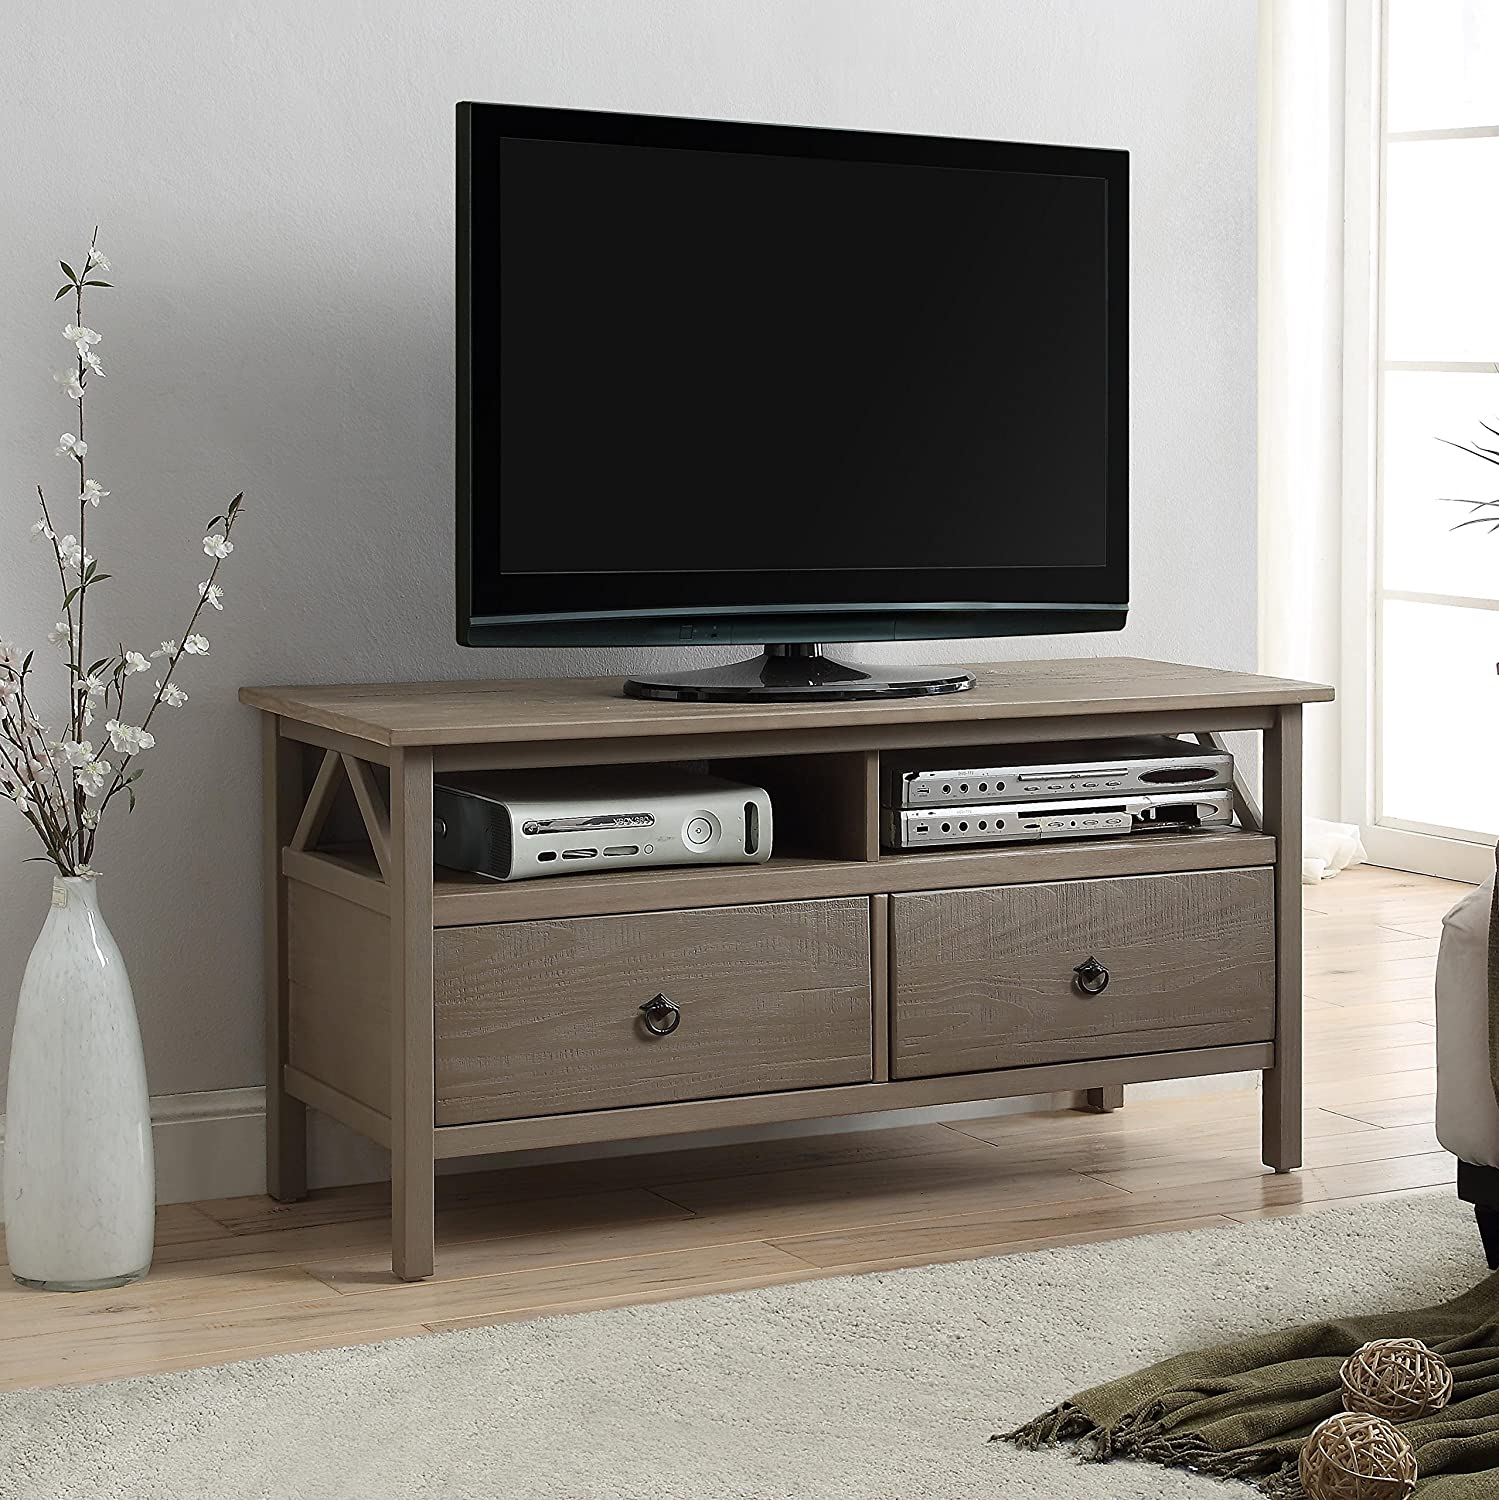 Tv Stand Designs Pdf : Amazon maloof rustic gray pine wood tv stand kitchen dining